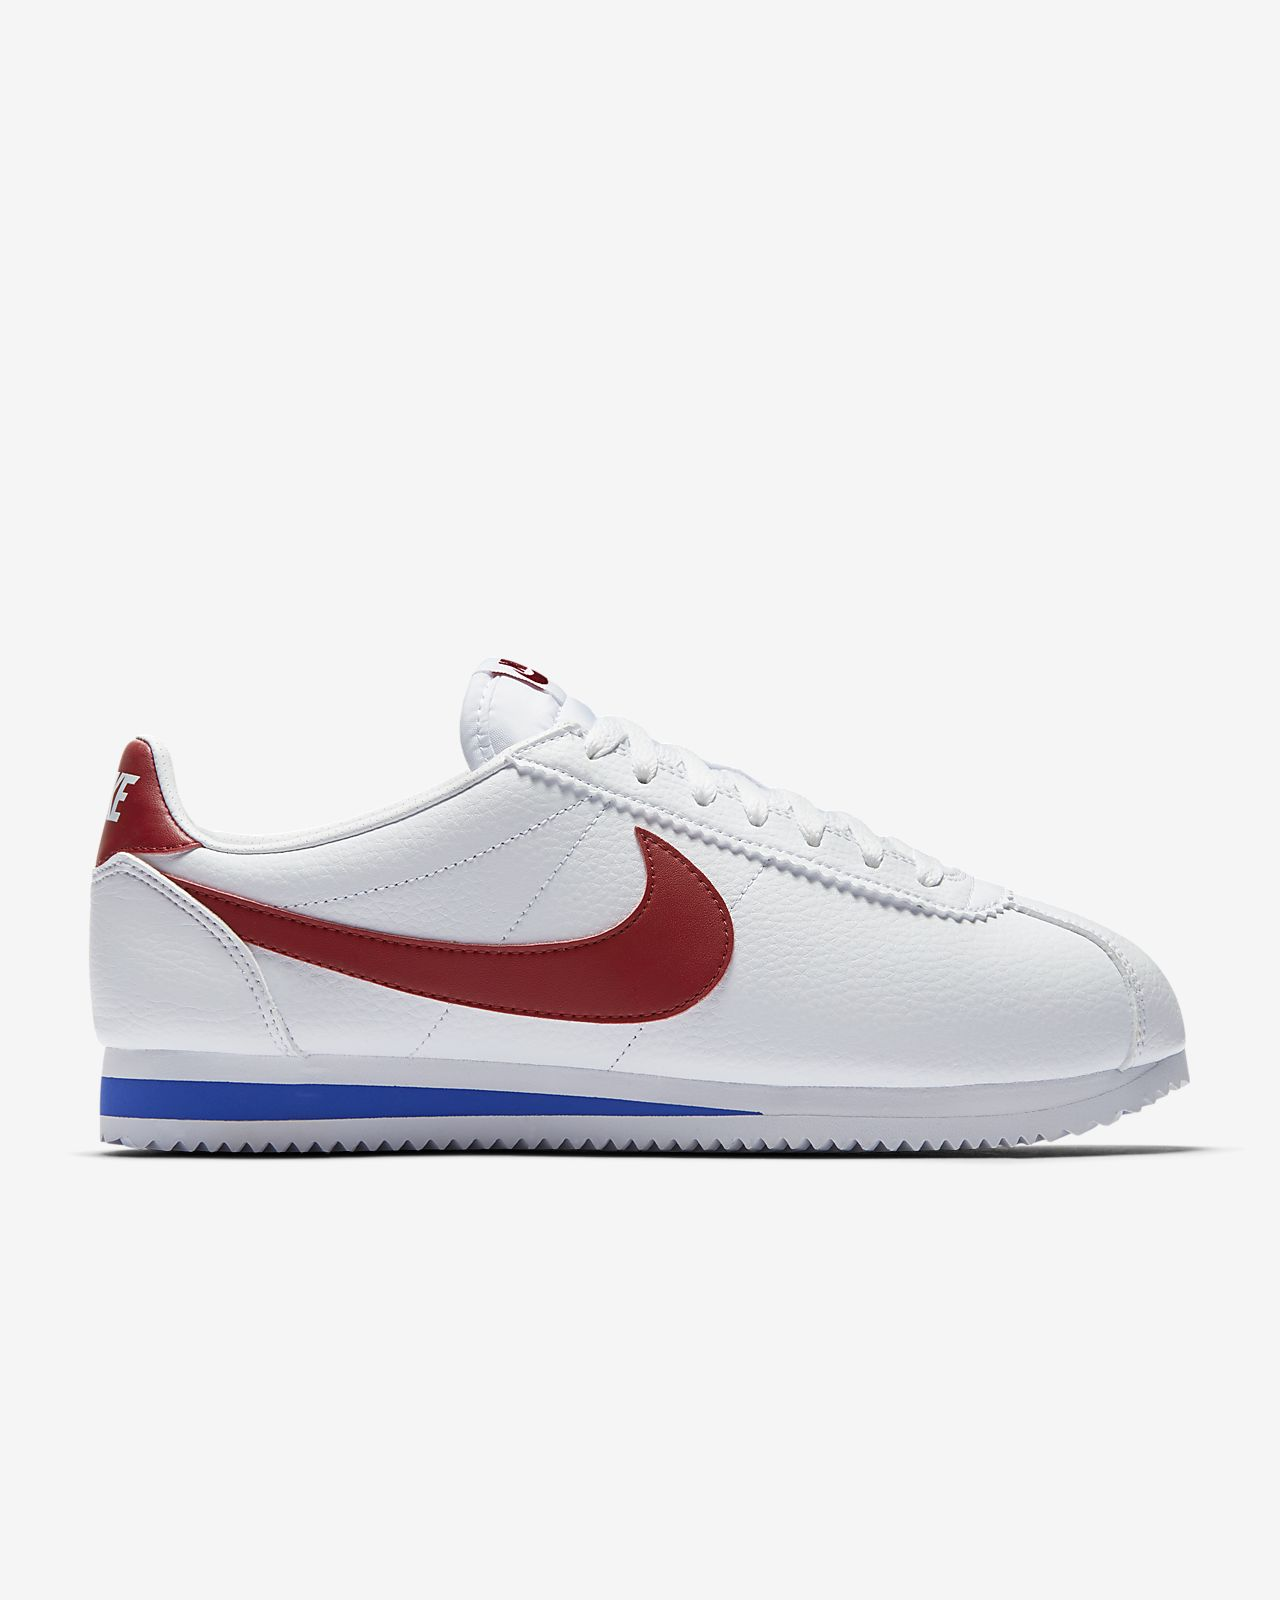 wholesale dealer 97959 38dc3 ... Nike Classic Cortez Mens Shoe